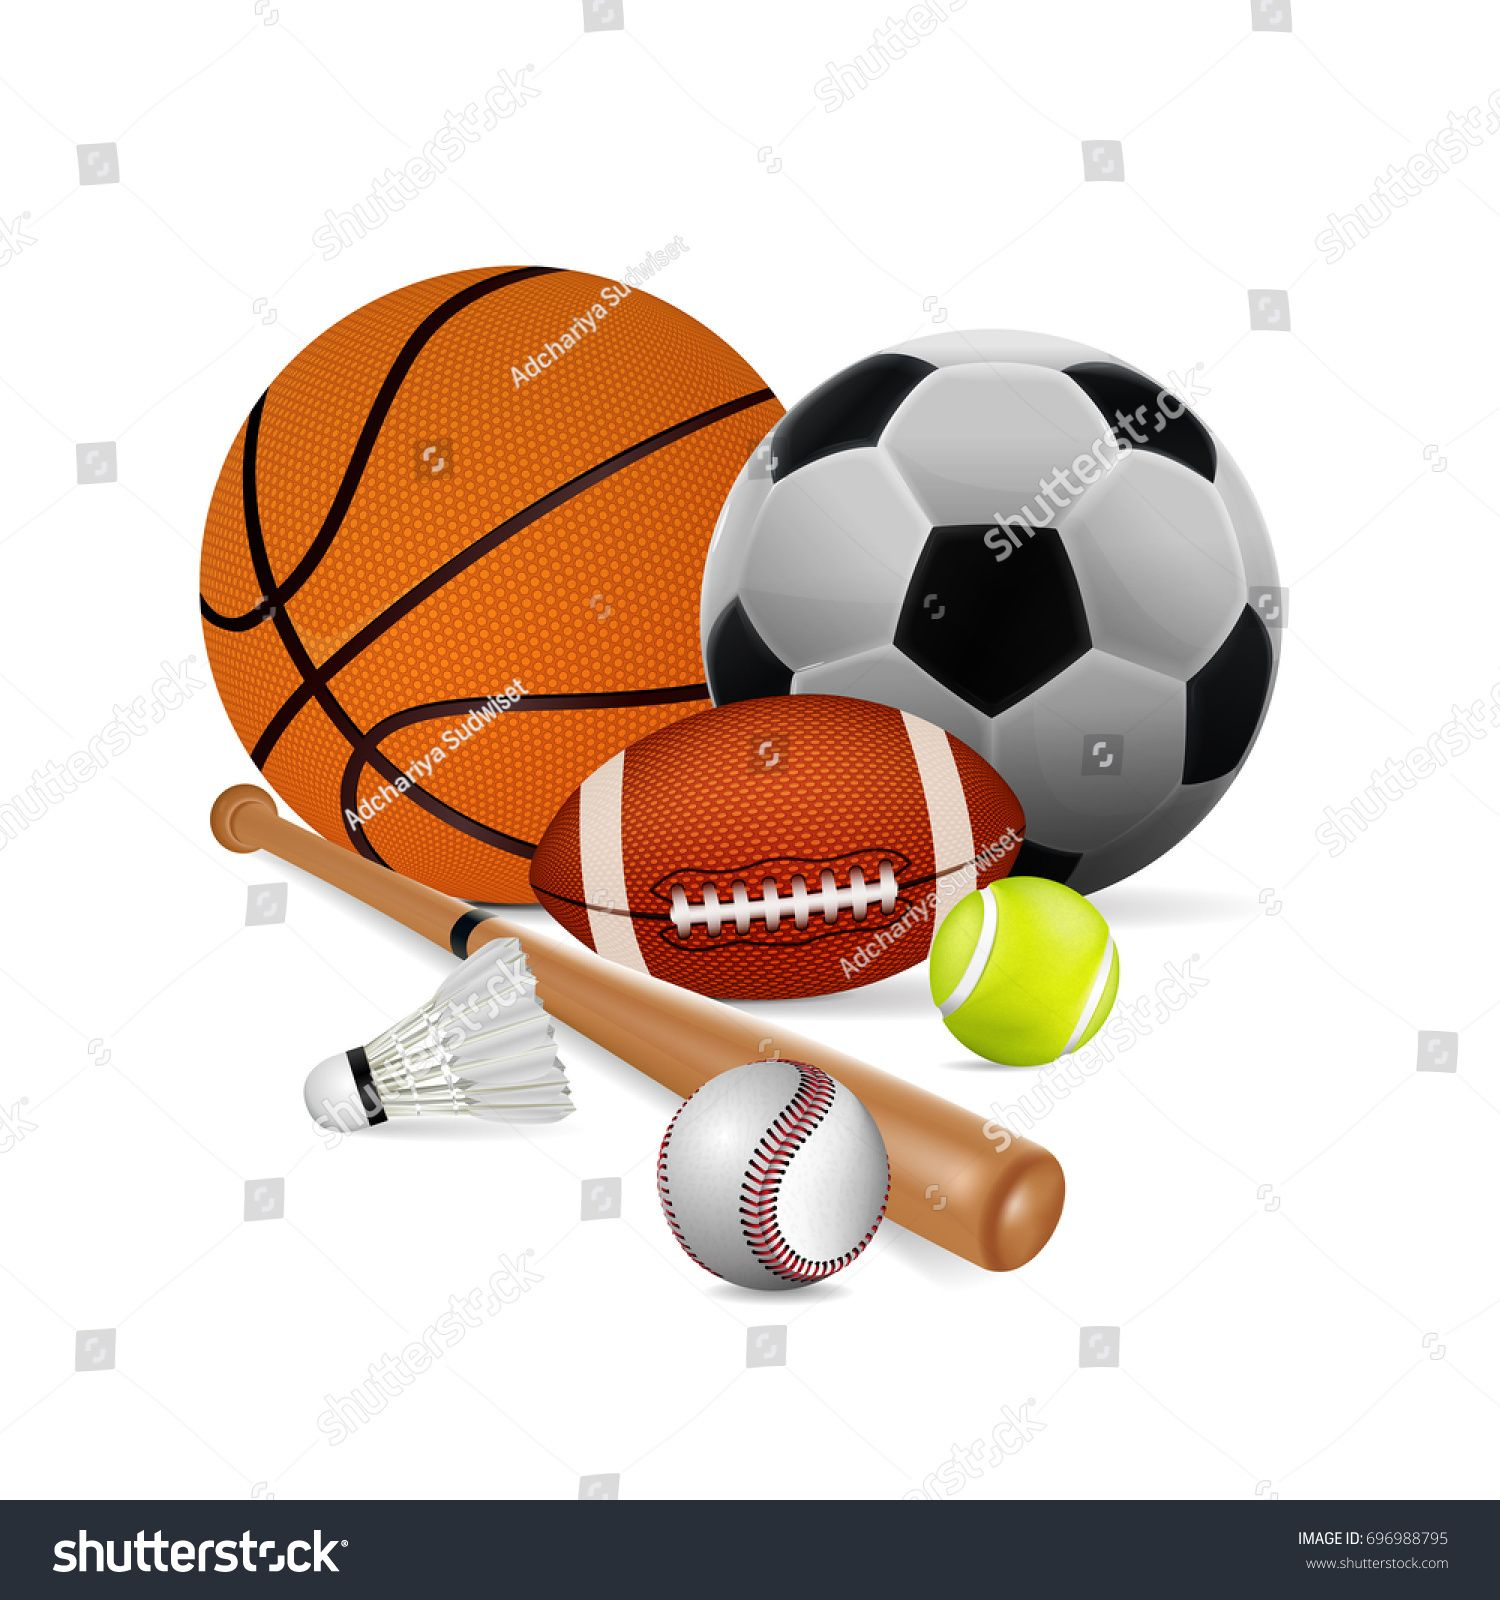 Sports Equipment Basketball Football Tennis Rugby Badminton And Baseball Isolated On White Background Vector Illustration Sports Equipment Sports Rugby